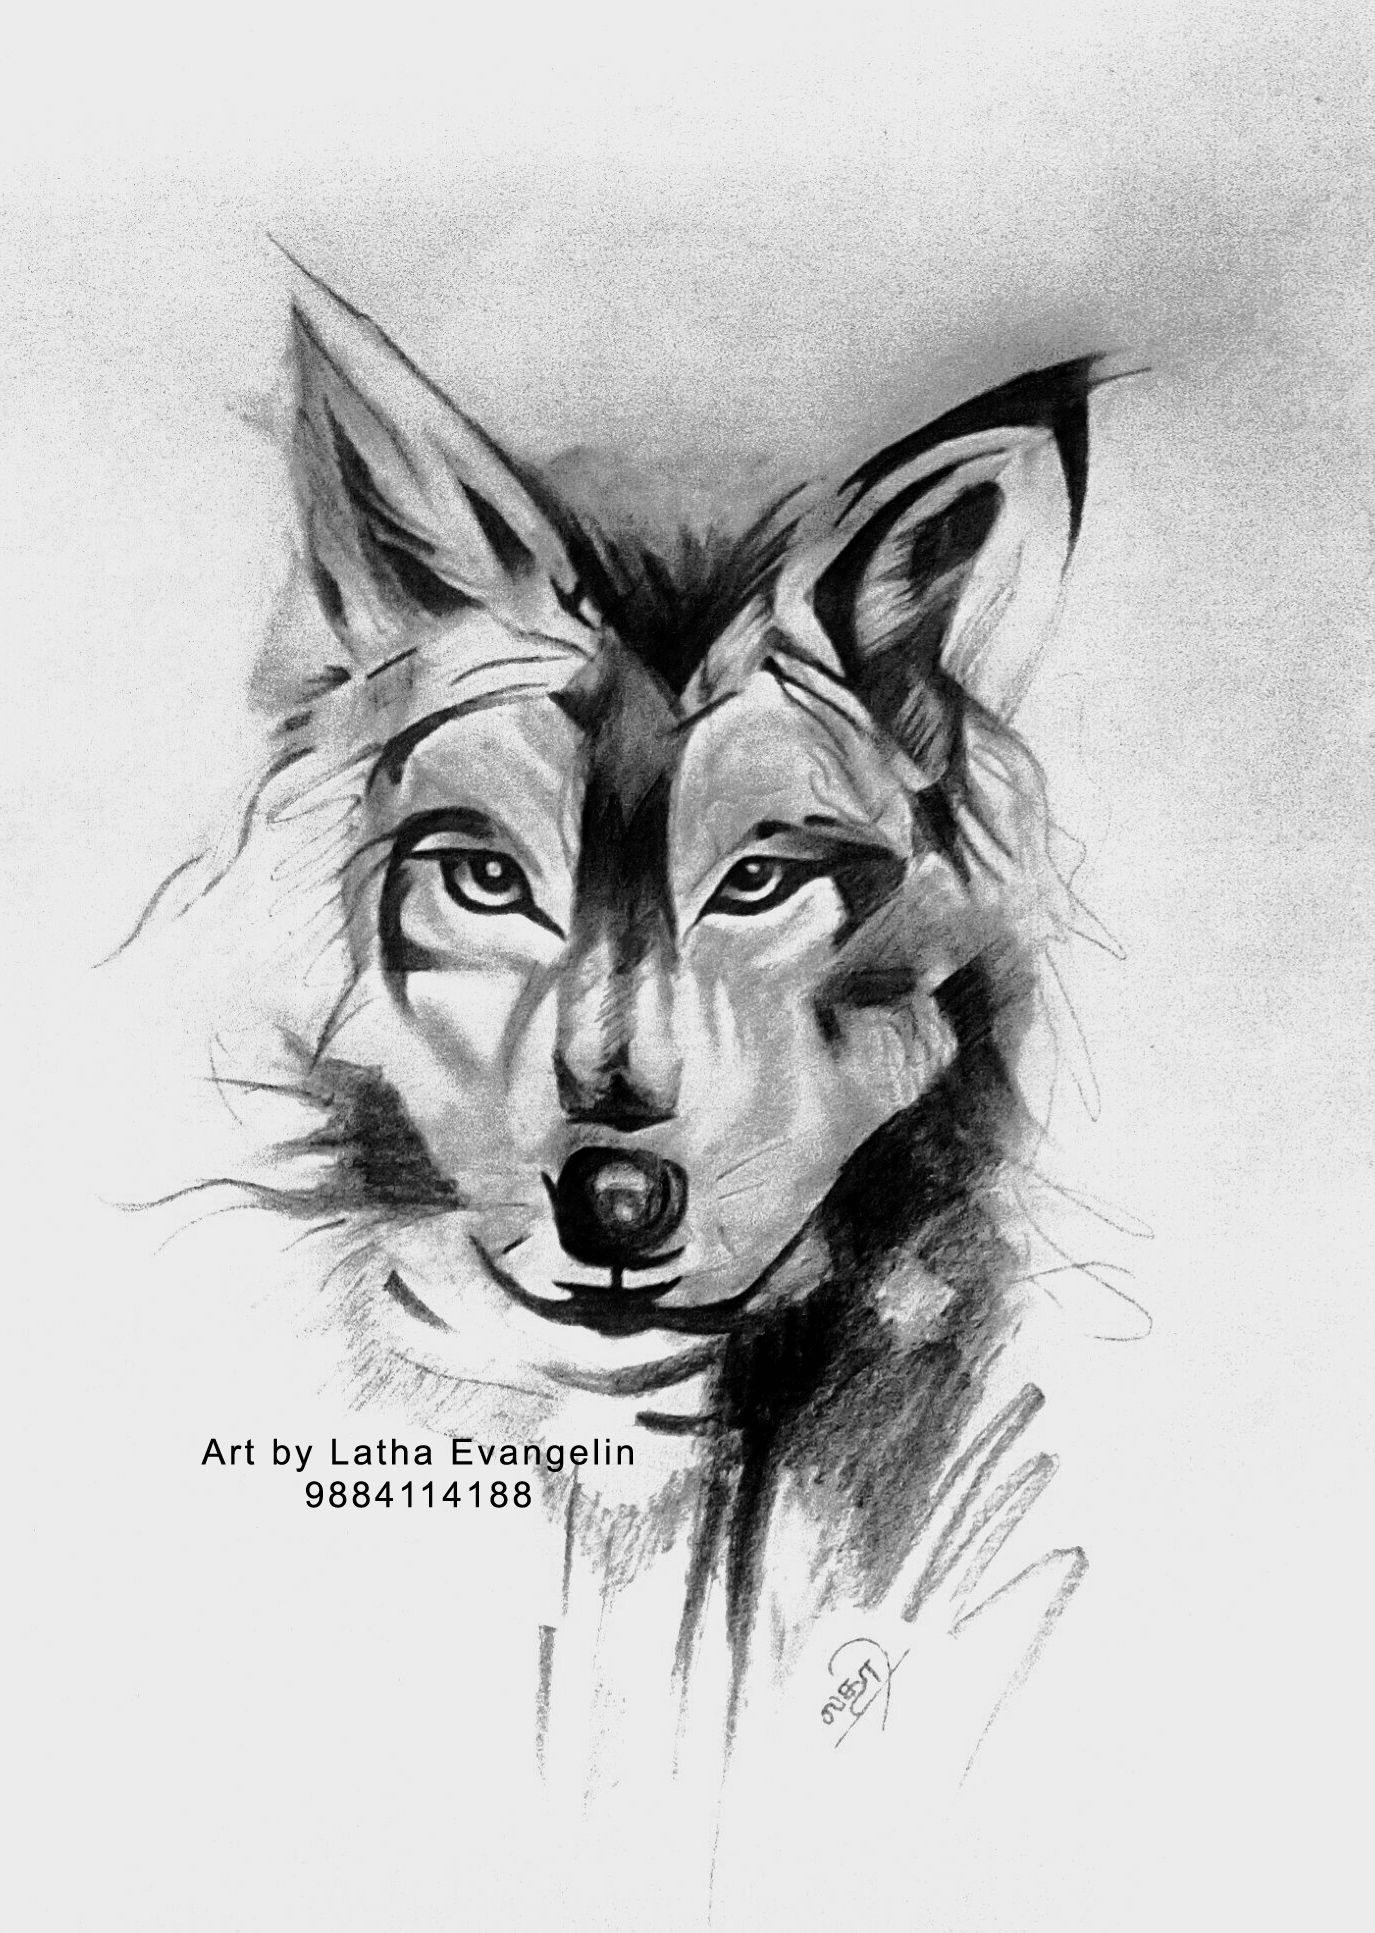 Dog abstract drawing lathaevangelin lathaevangelinartworks dog dogs doglovers dogdrawing pencil dogrealisticdrawing abstract germanshepherd